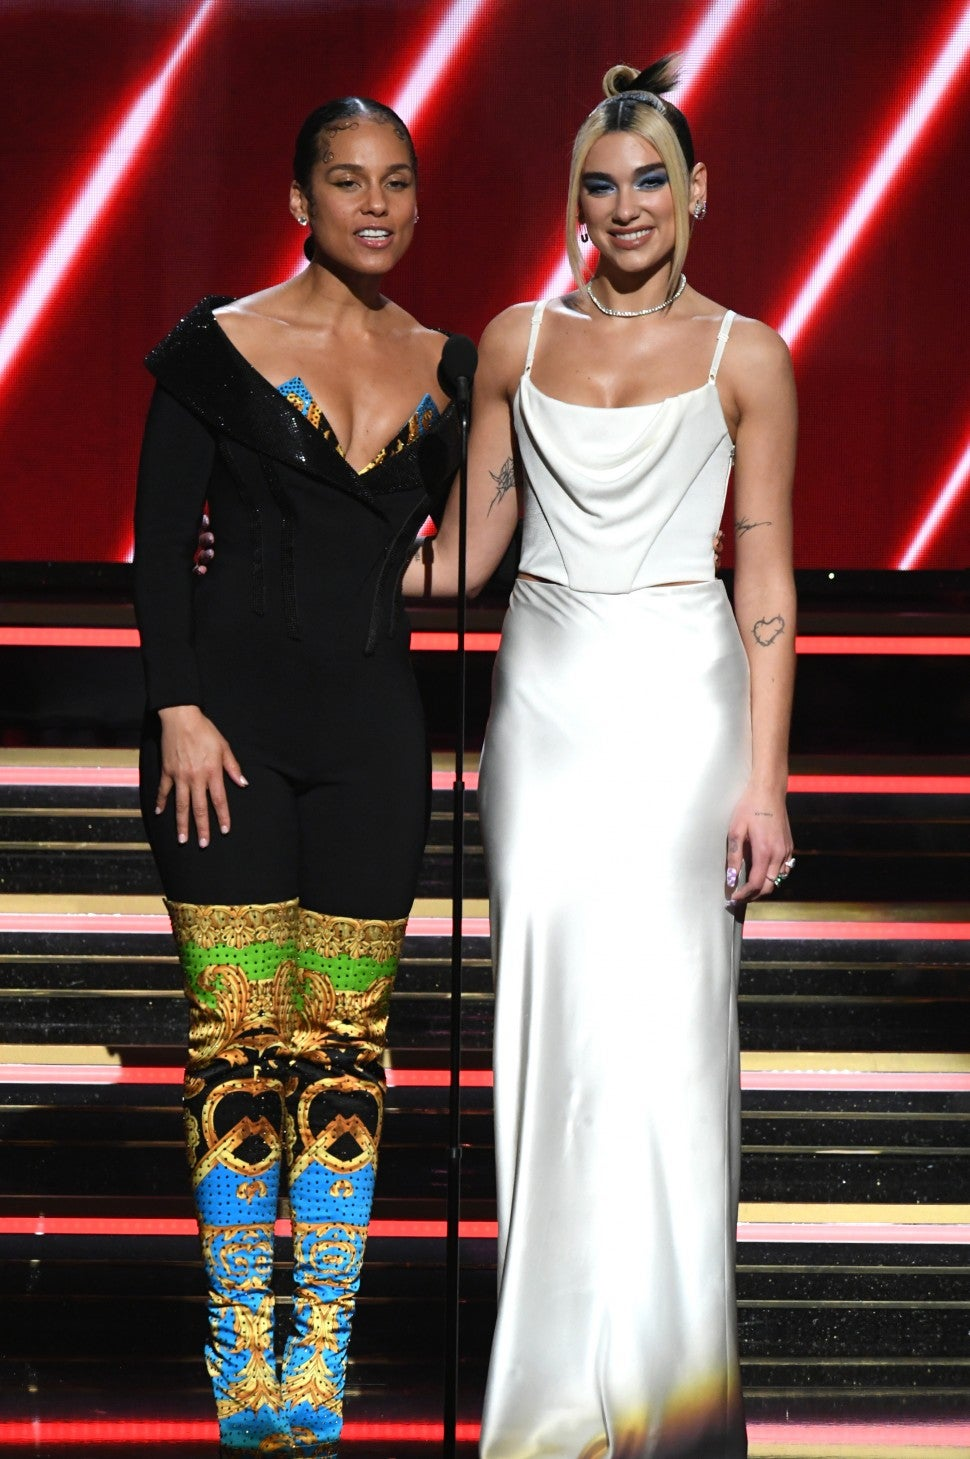 see every single outfit alicia keys wore while hosting the 2020 grammys entertainment tonight single outfit alicia keys wore